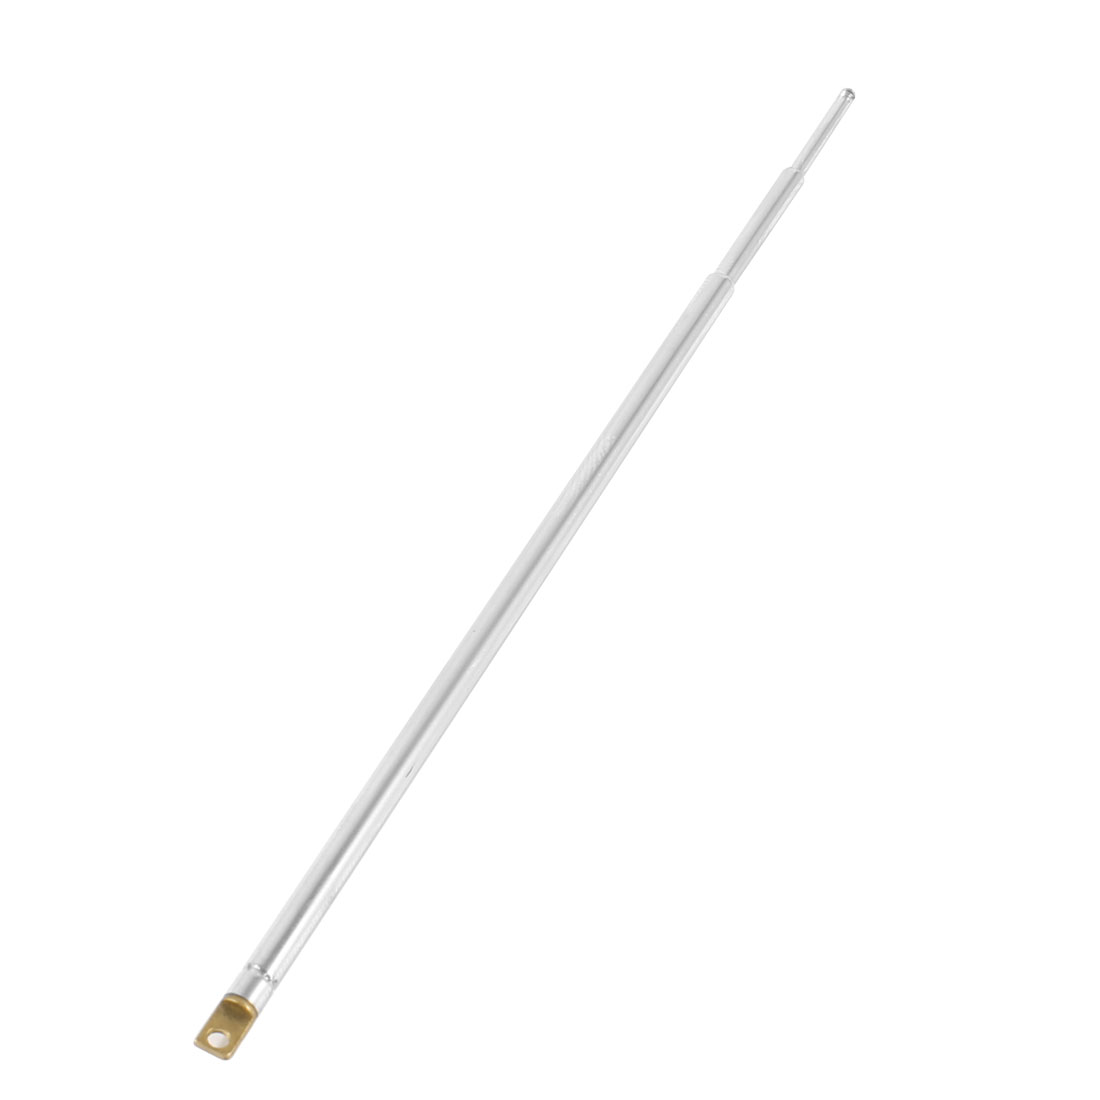 22.5cm Silver Tone 3 Sections Telescoping Antenna Aerial for Car Radio TV